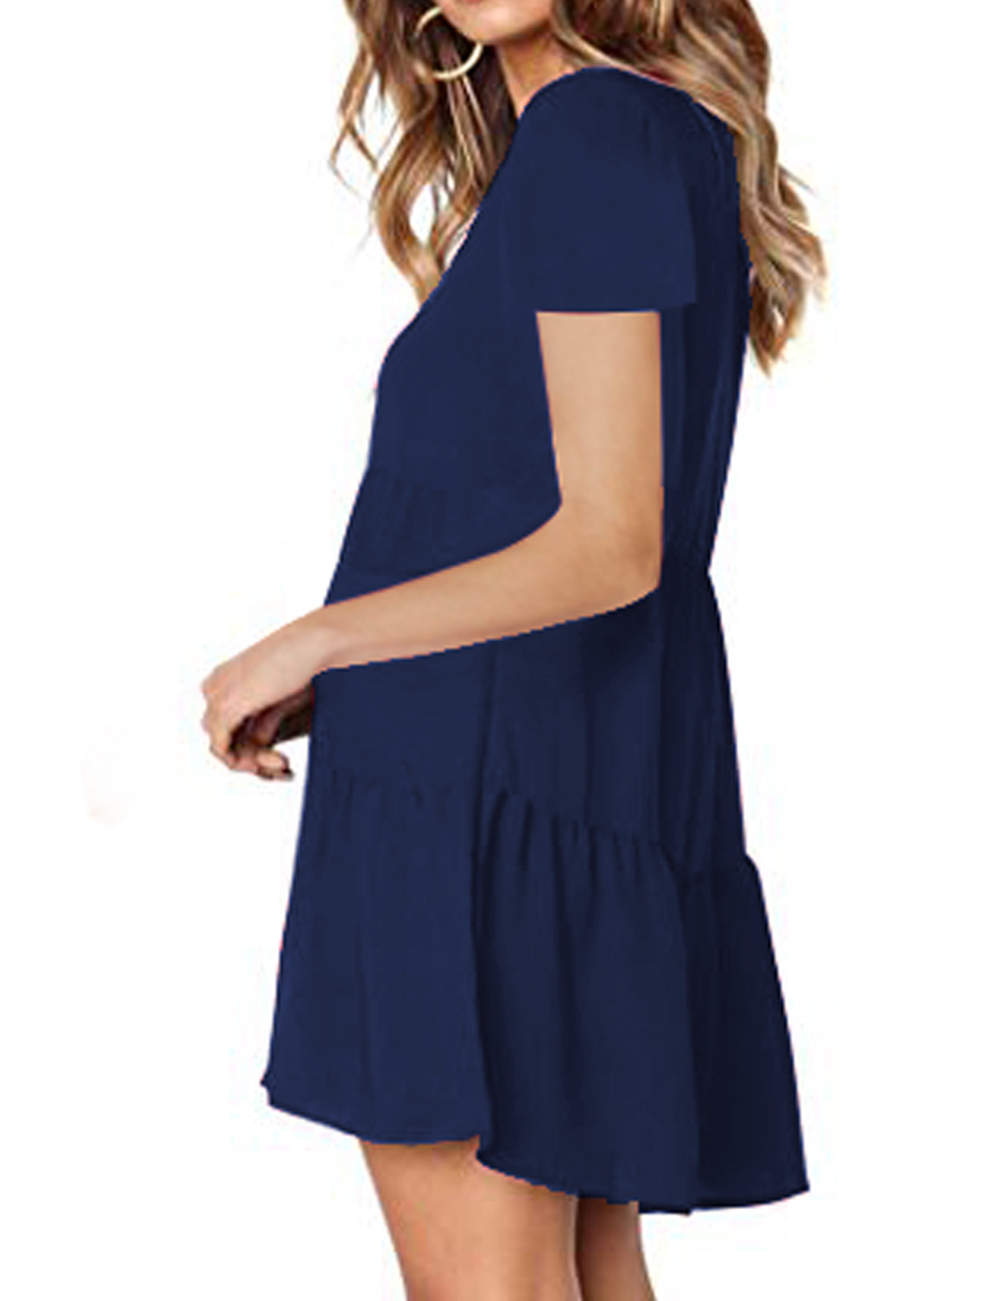 //cdn.affectcloud.com/feelingirldress/upload/imgs/2019-05-23/VZ190128-BU6/VZ190128-BU6-3.jpg